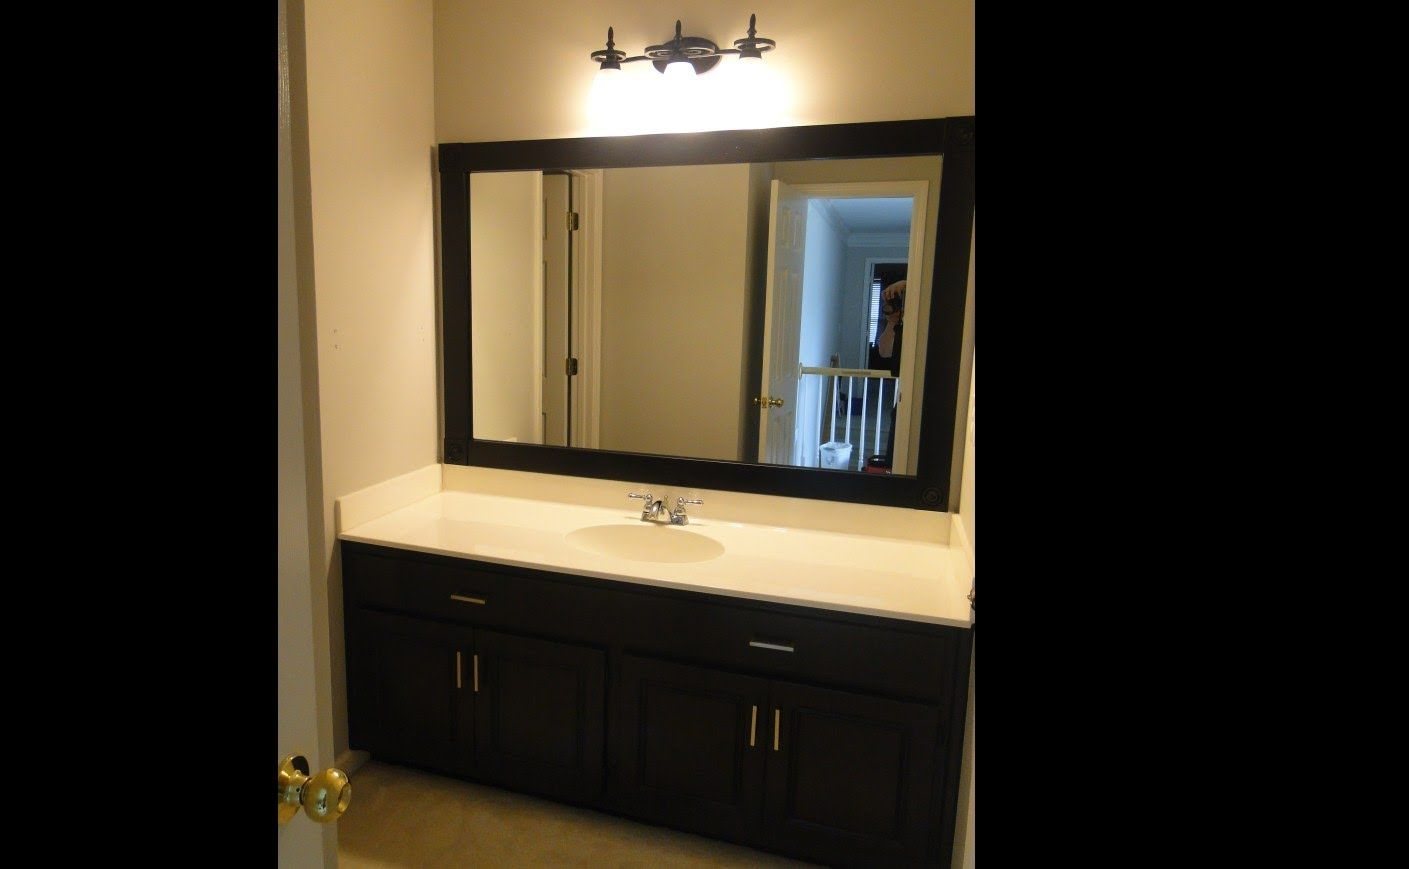 bathroom makeover framing mirror and painting cabinets diy painting bathroom cabinets. Black Bedroom Furniture Sets. Home Design Ideas